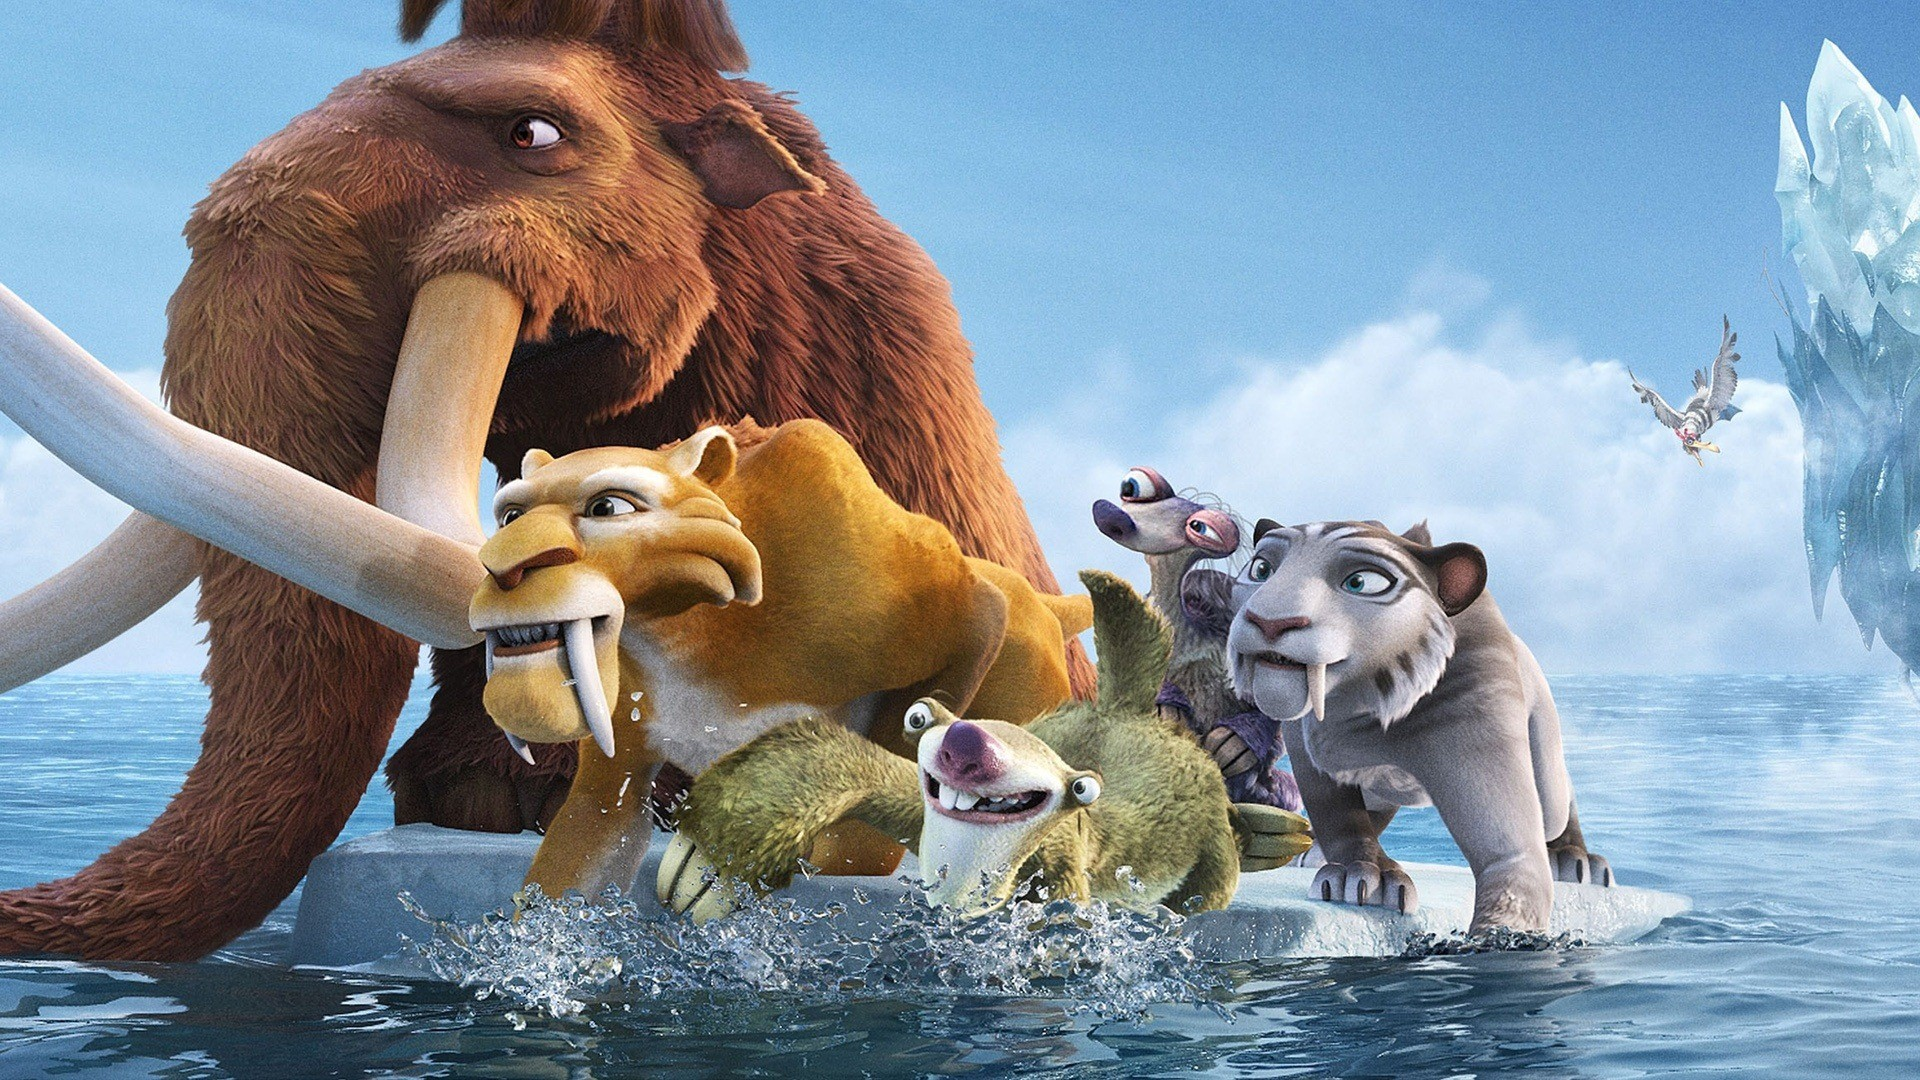 90421 448110-ice-age-computer-wallpapers H804cGR  iceage4_scratthanksgiving_hd …